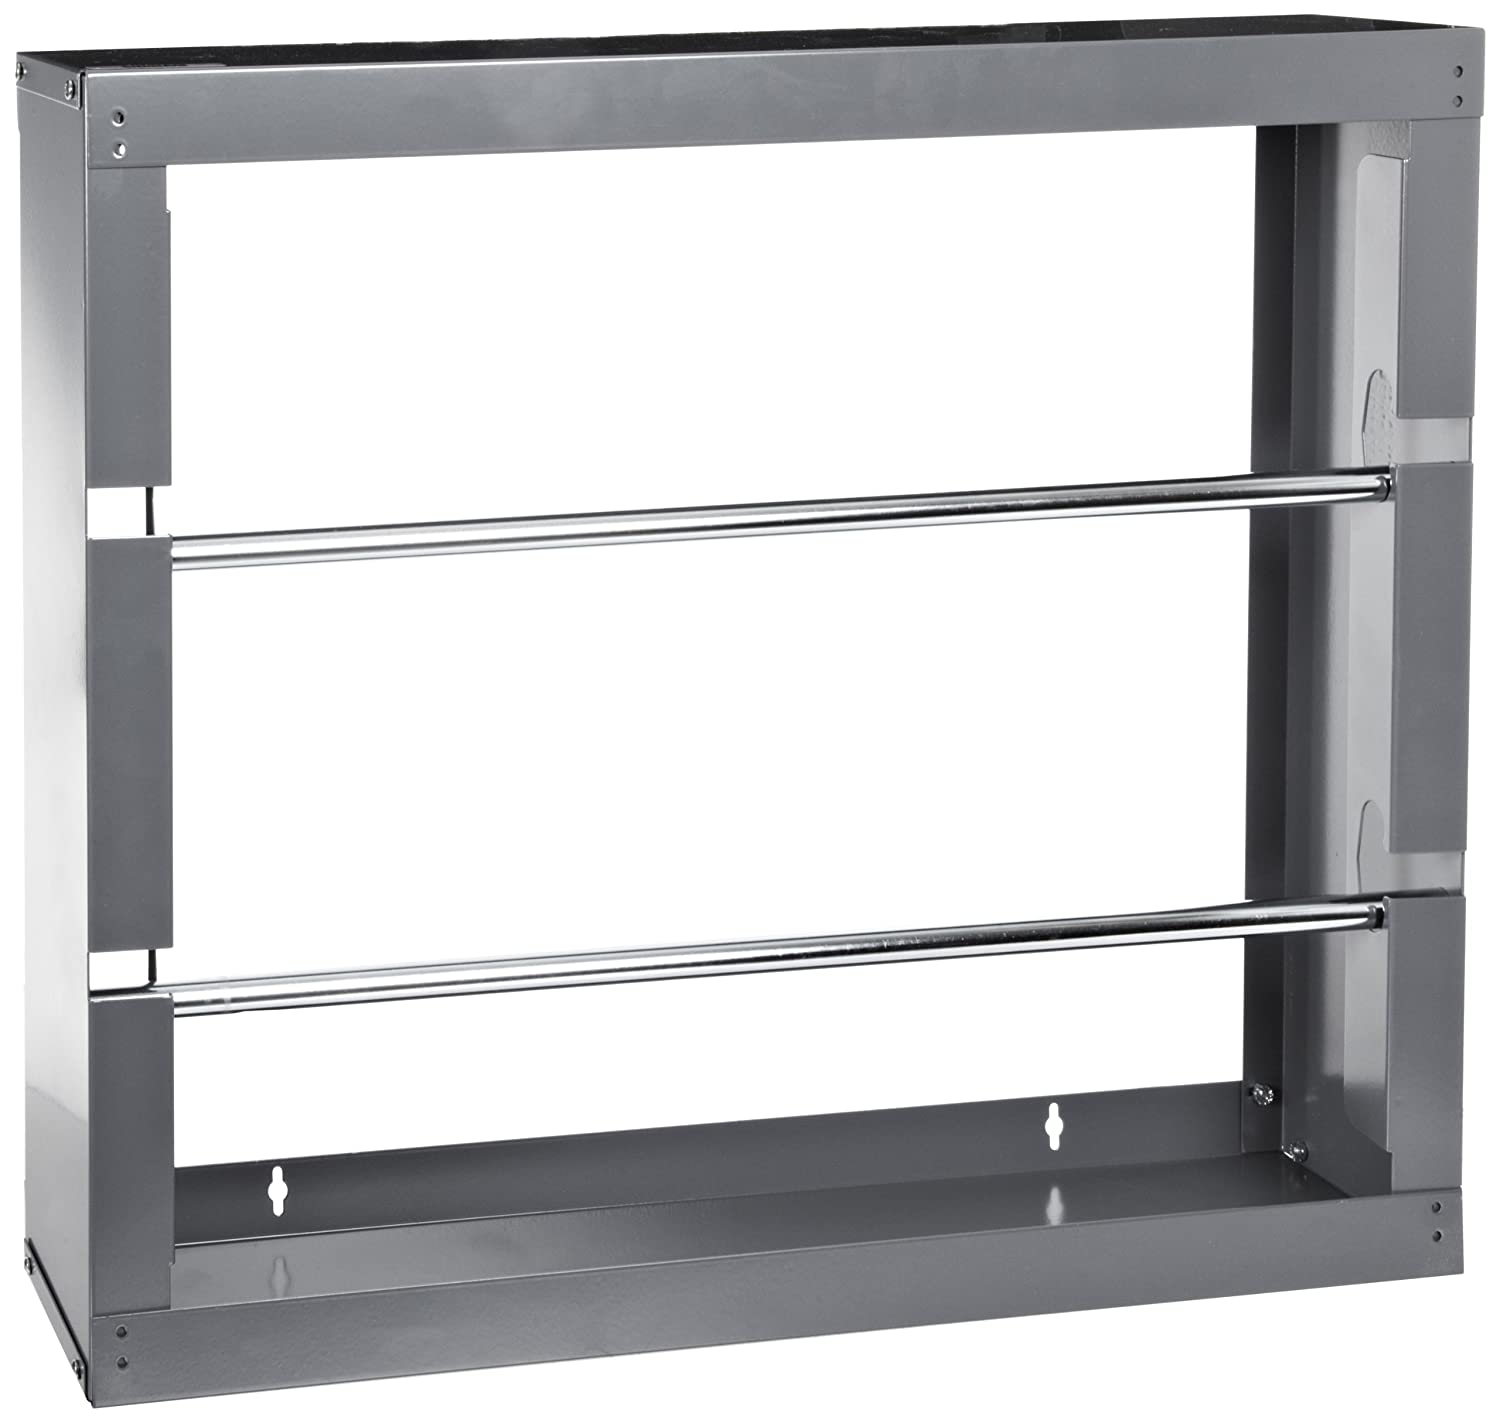 26-1//8 W x 17-7//8 H x 6 Depth Durham 384-95 Gray Cold-Rolled Steel Wire Spool Rack with 2 Rods